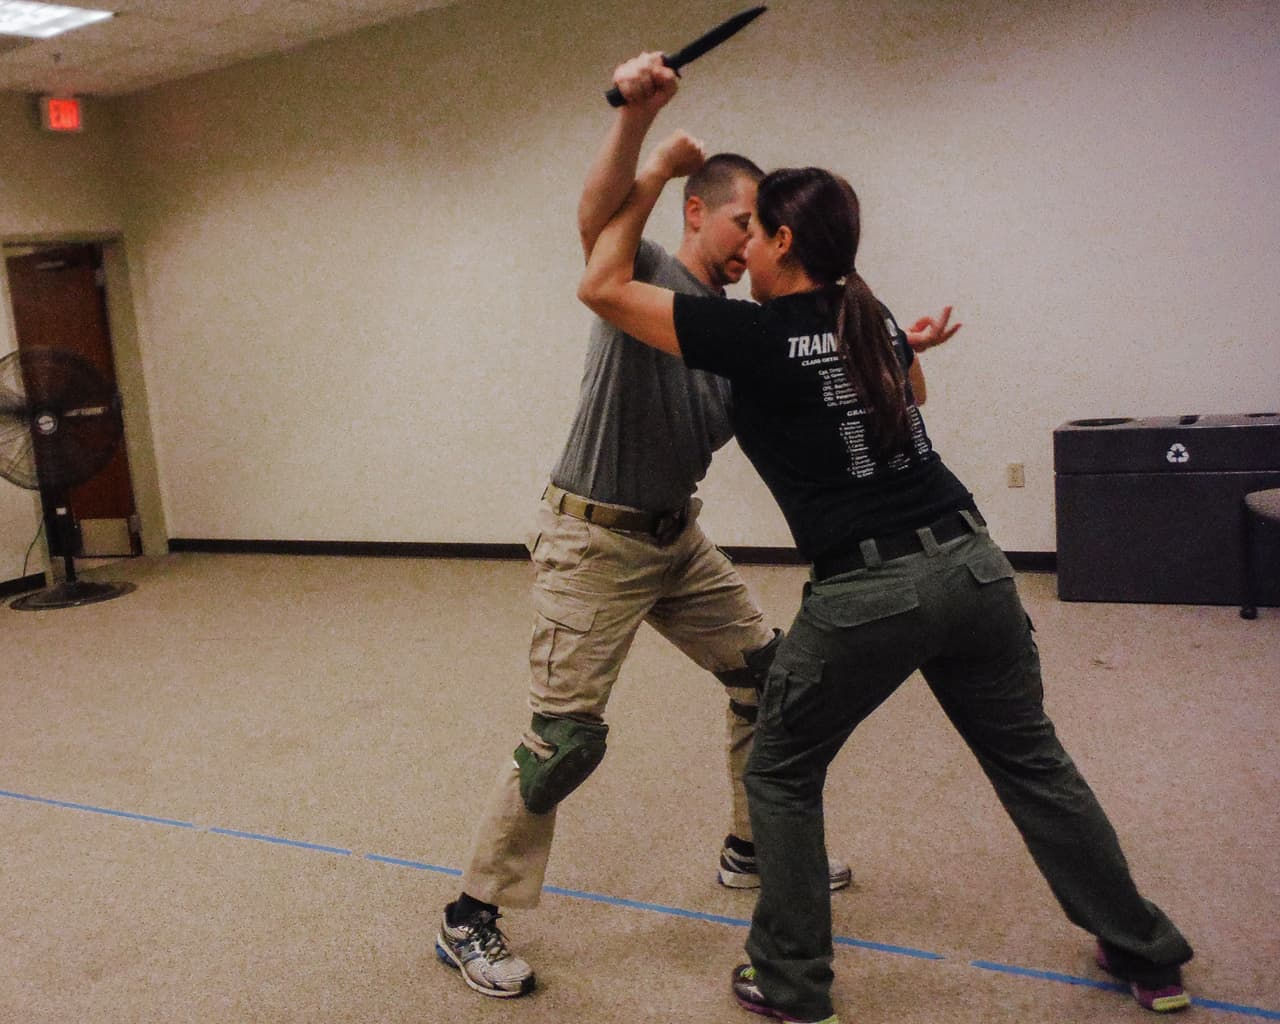 prevailing-against-edged-weapons-11